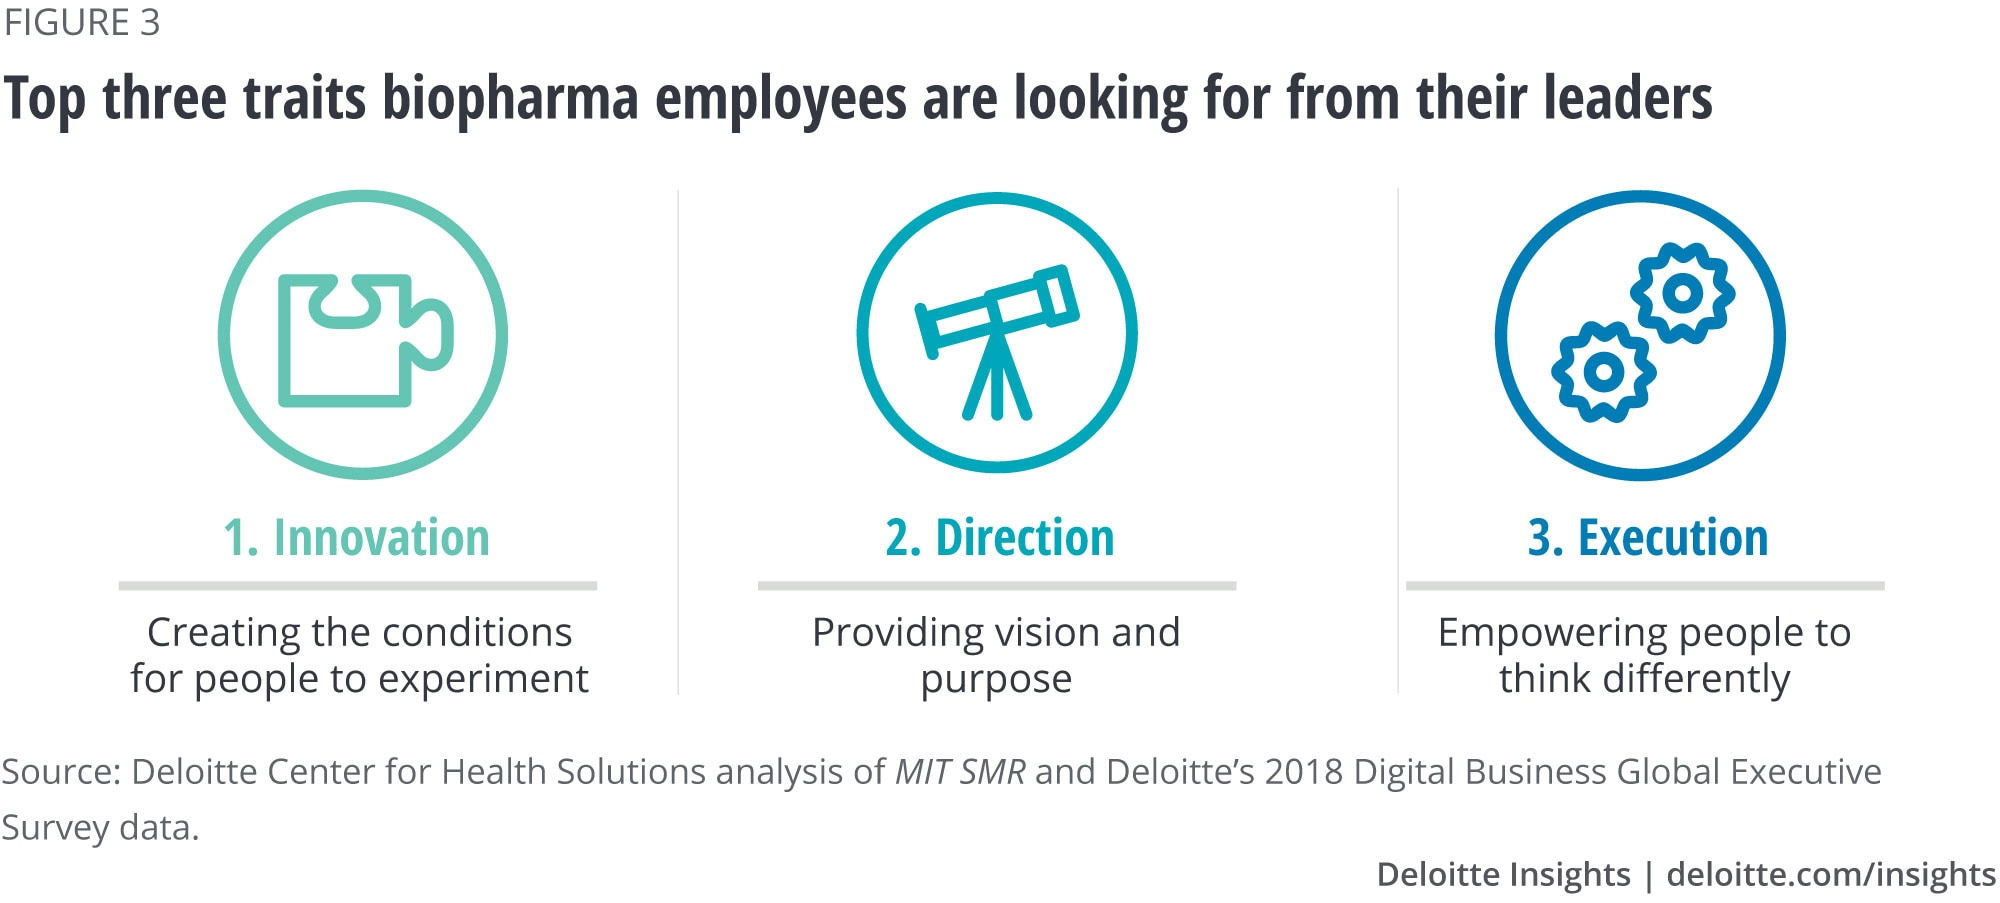 Top three traits biopharma employees are looking for from their leaders